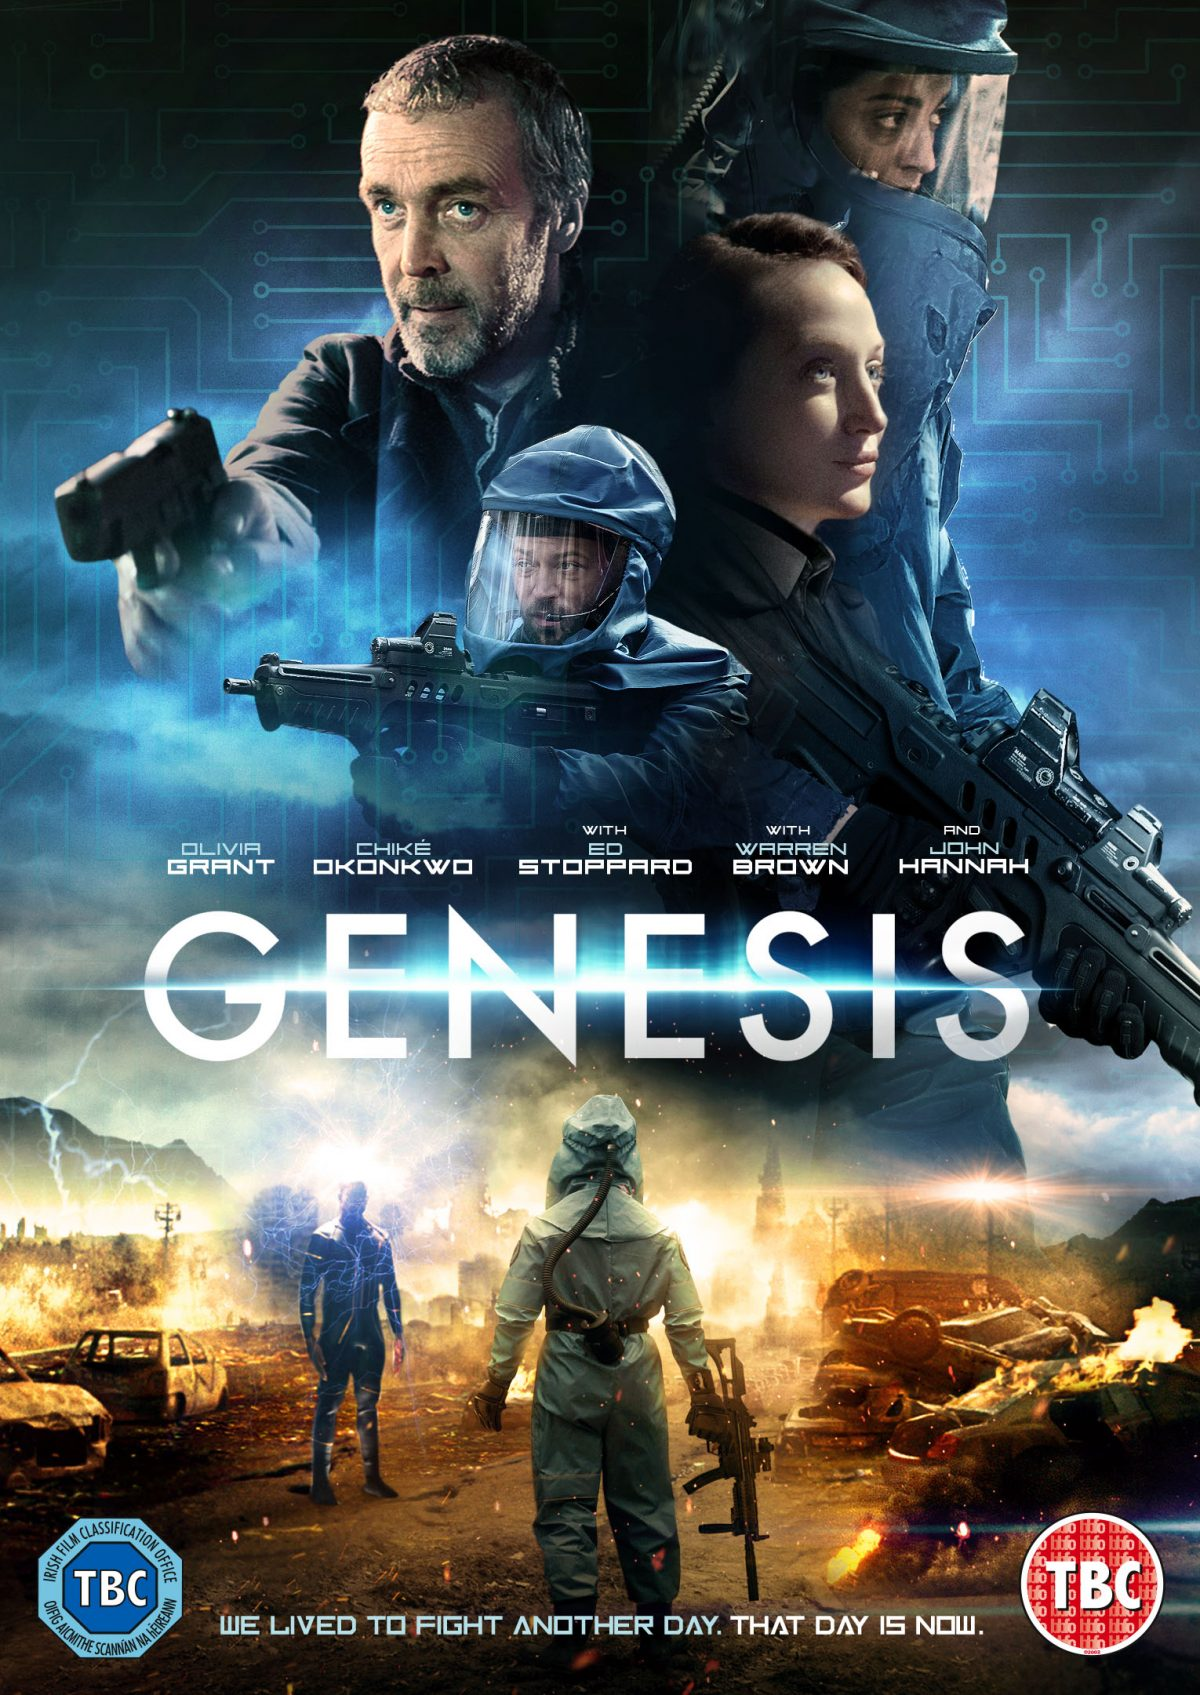 Are you ready for some Sci-Fi as Man battles Machine in a desperate future? Well, get ready as the stellar British sci-fi adventure Genesis is heading our way.